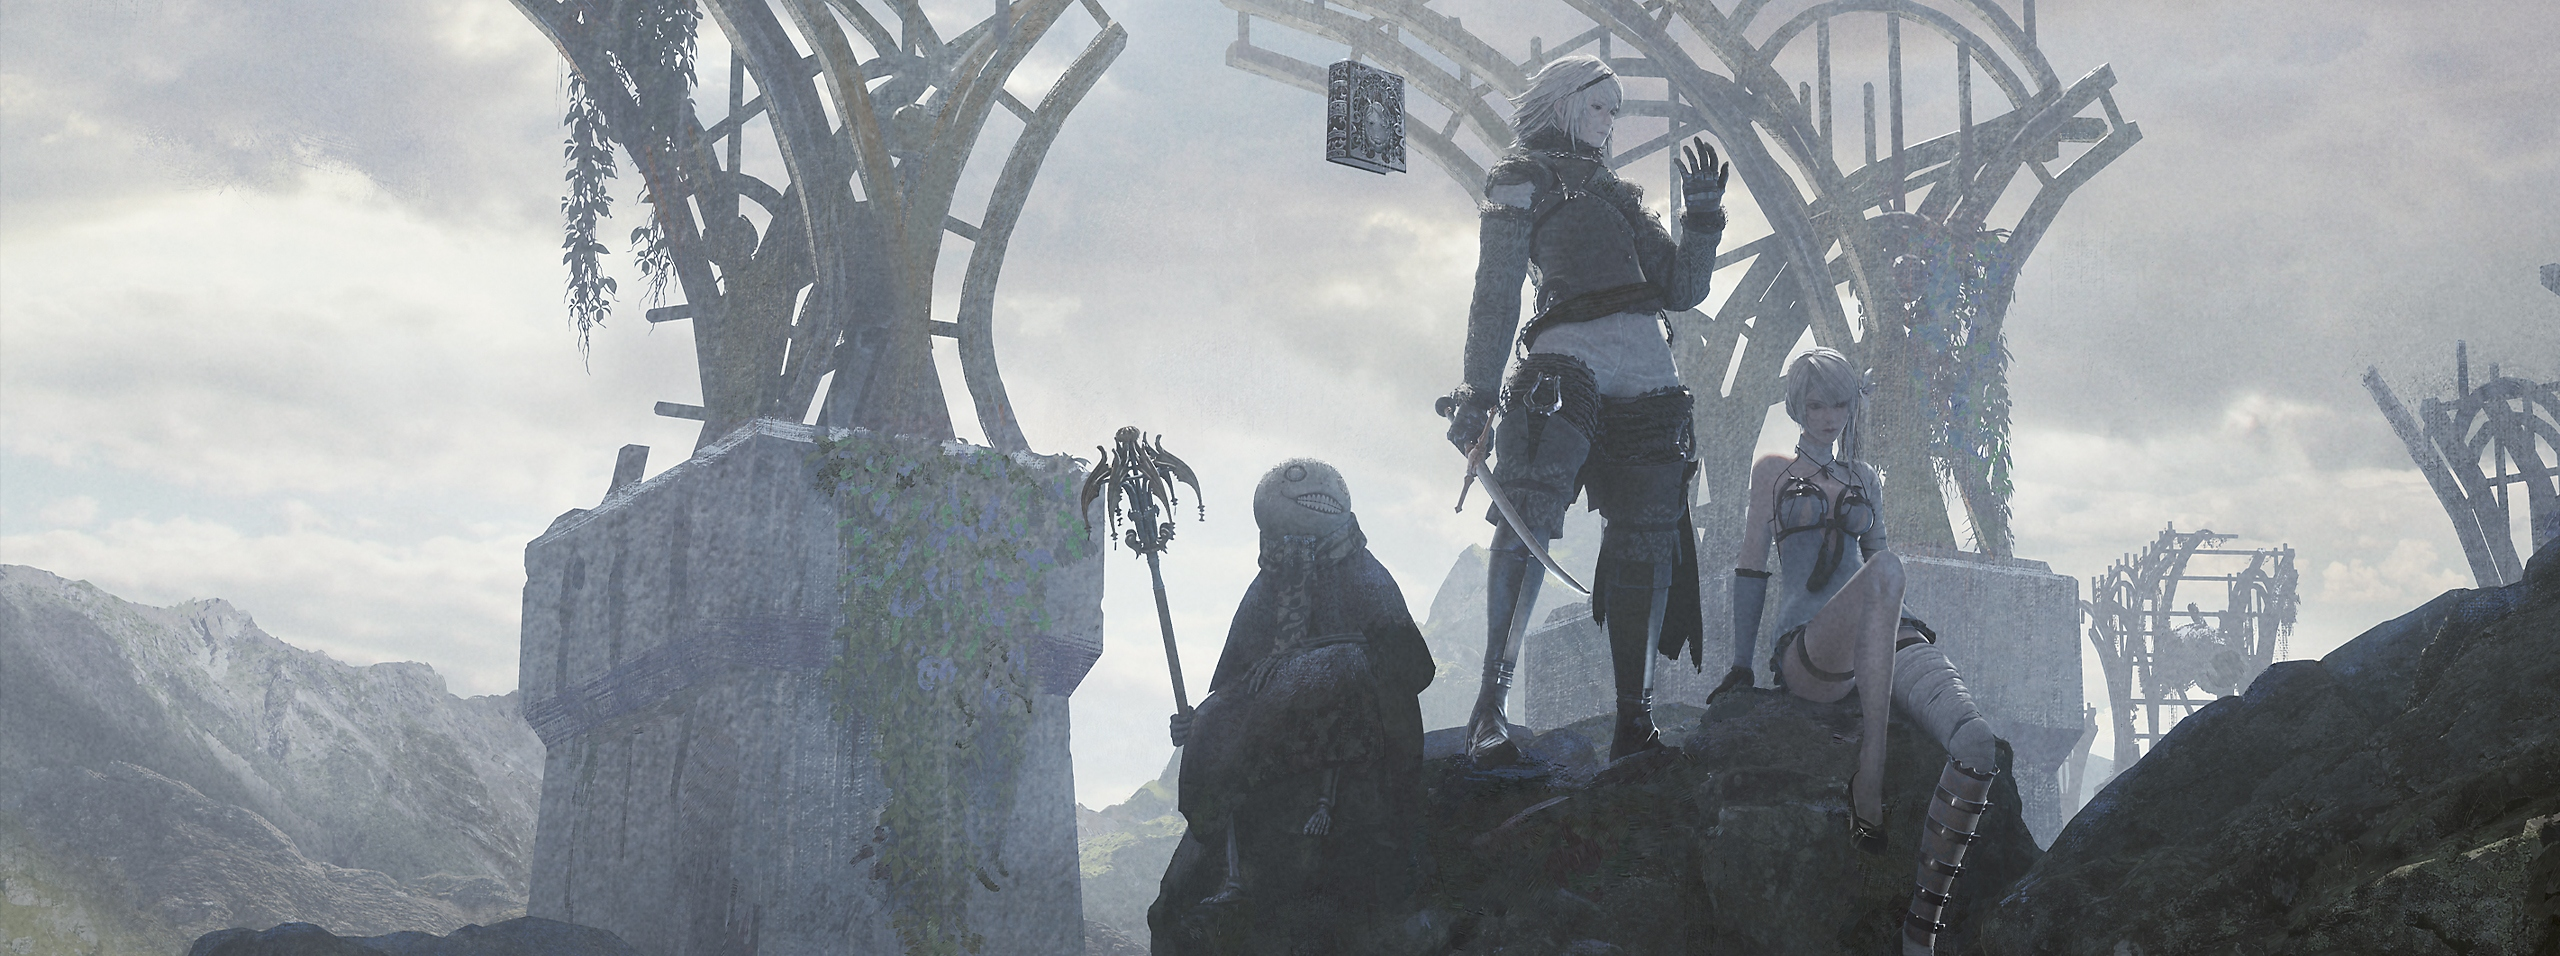 NieR Replicant ver.1.22474487139...   - Key Art